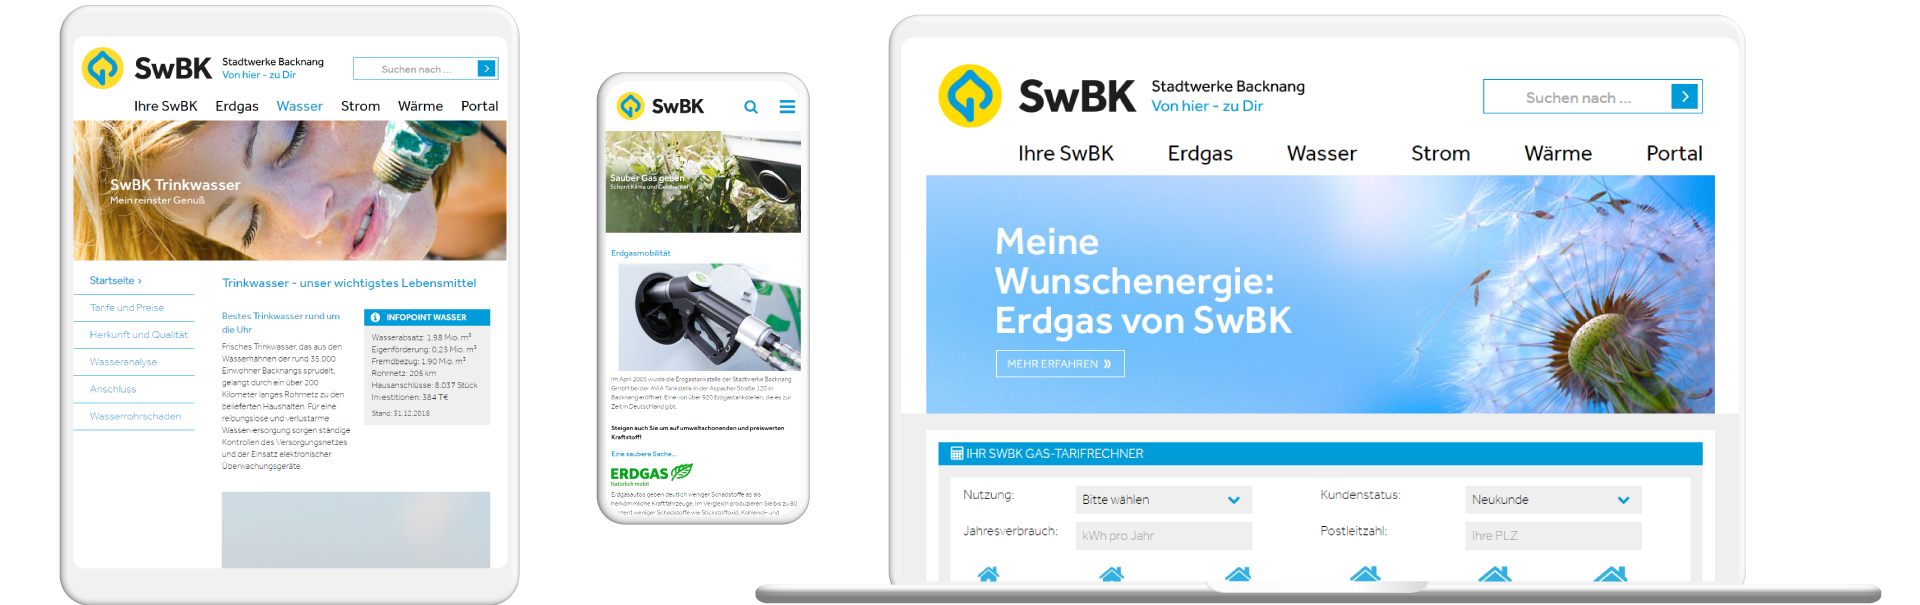 Screens der SwBK-Website